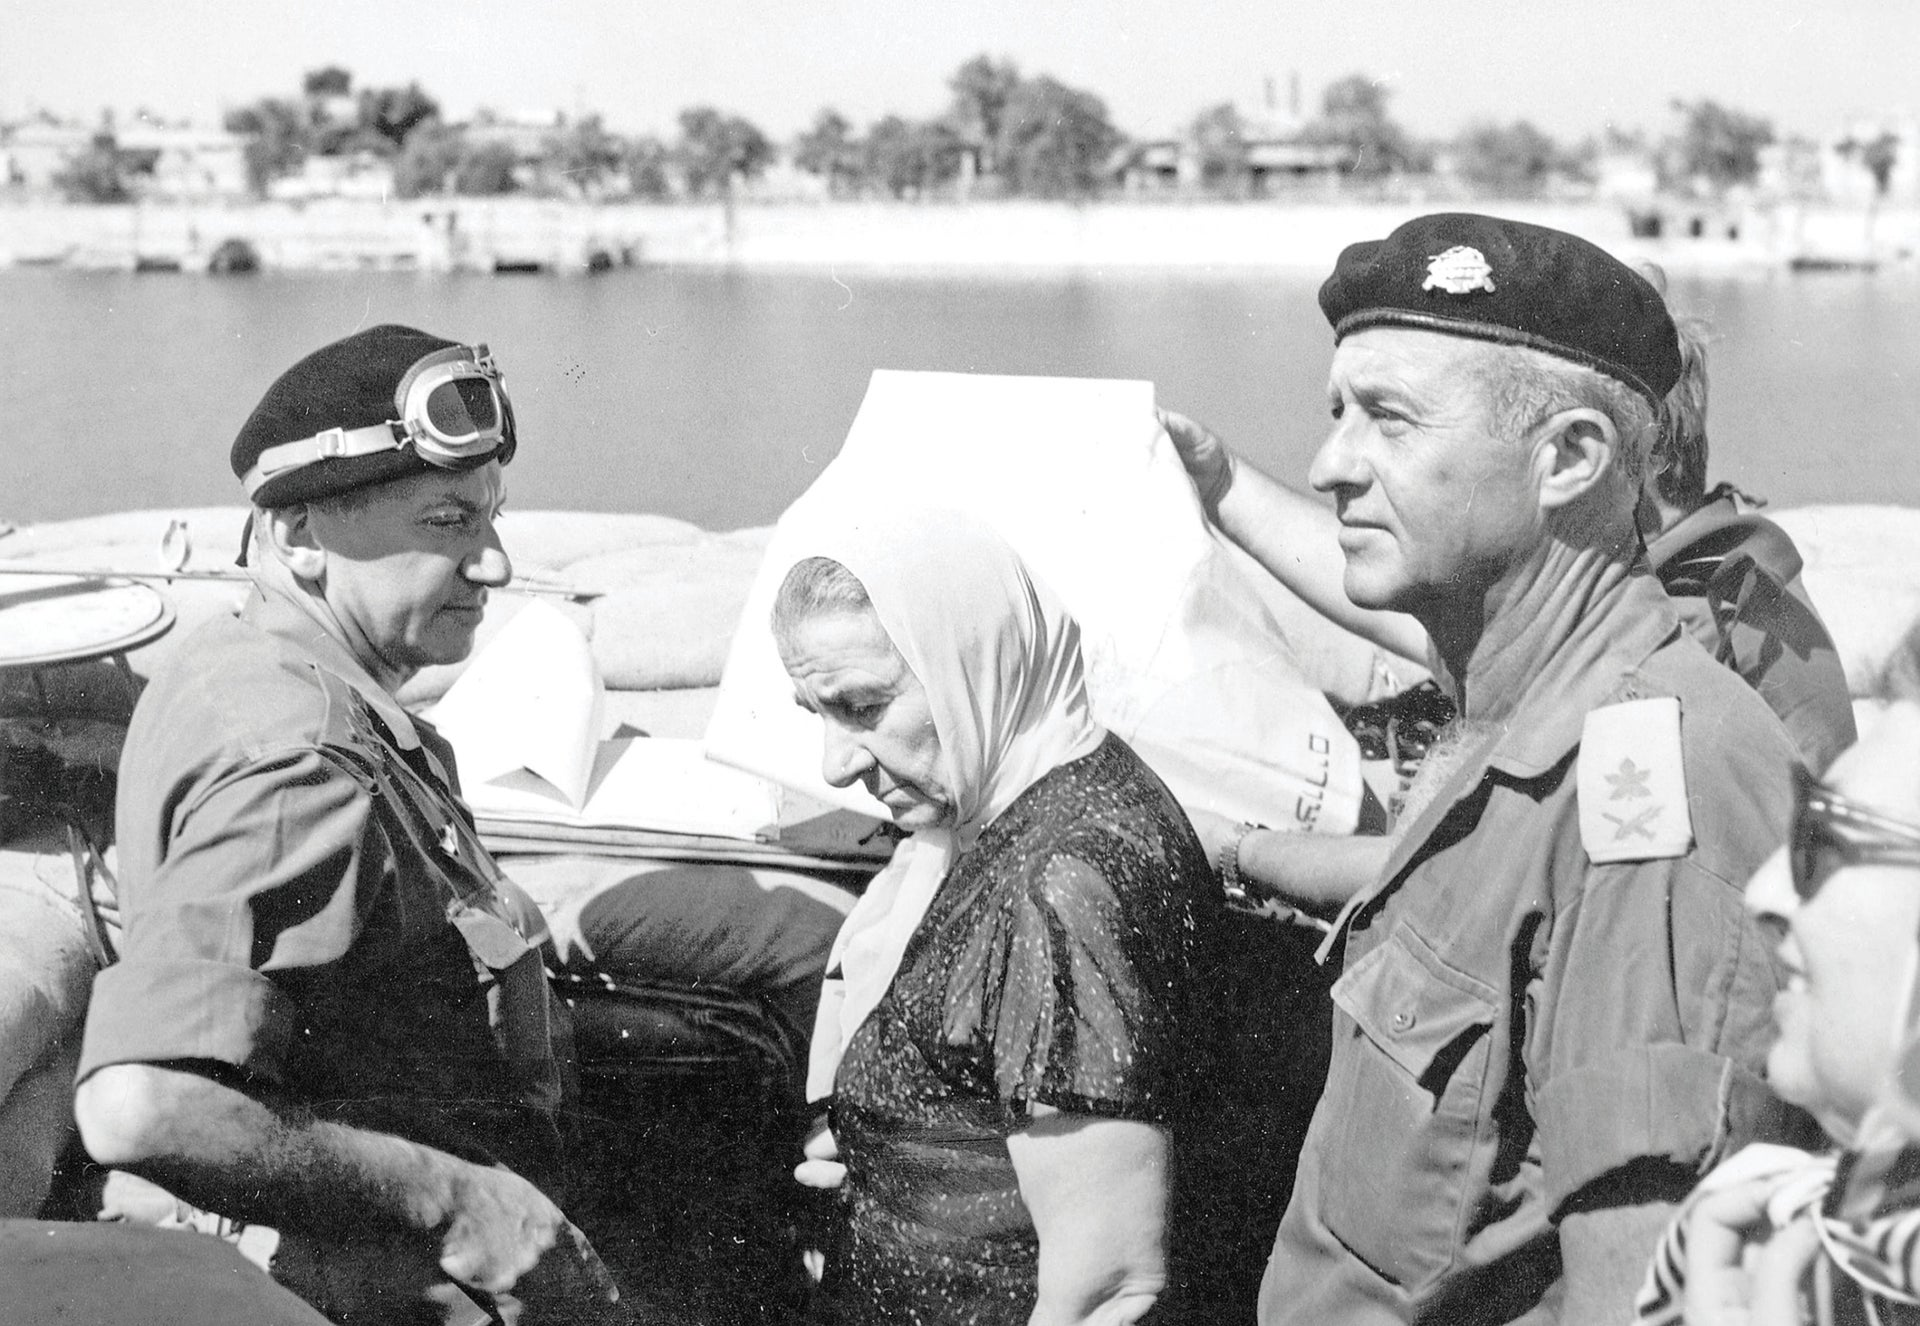 On the banks of the Suez Canal, during the war, from left: Chief-of-Staff Haim Bar-Lev, Prime Minister Golda Meir and IDF Maj. Gen. Dan Laner.